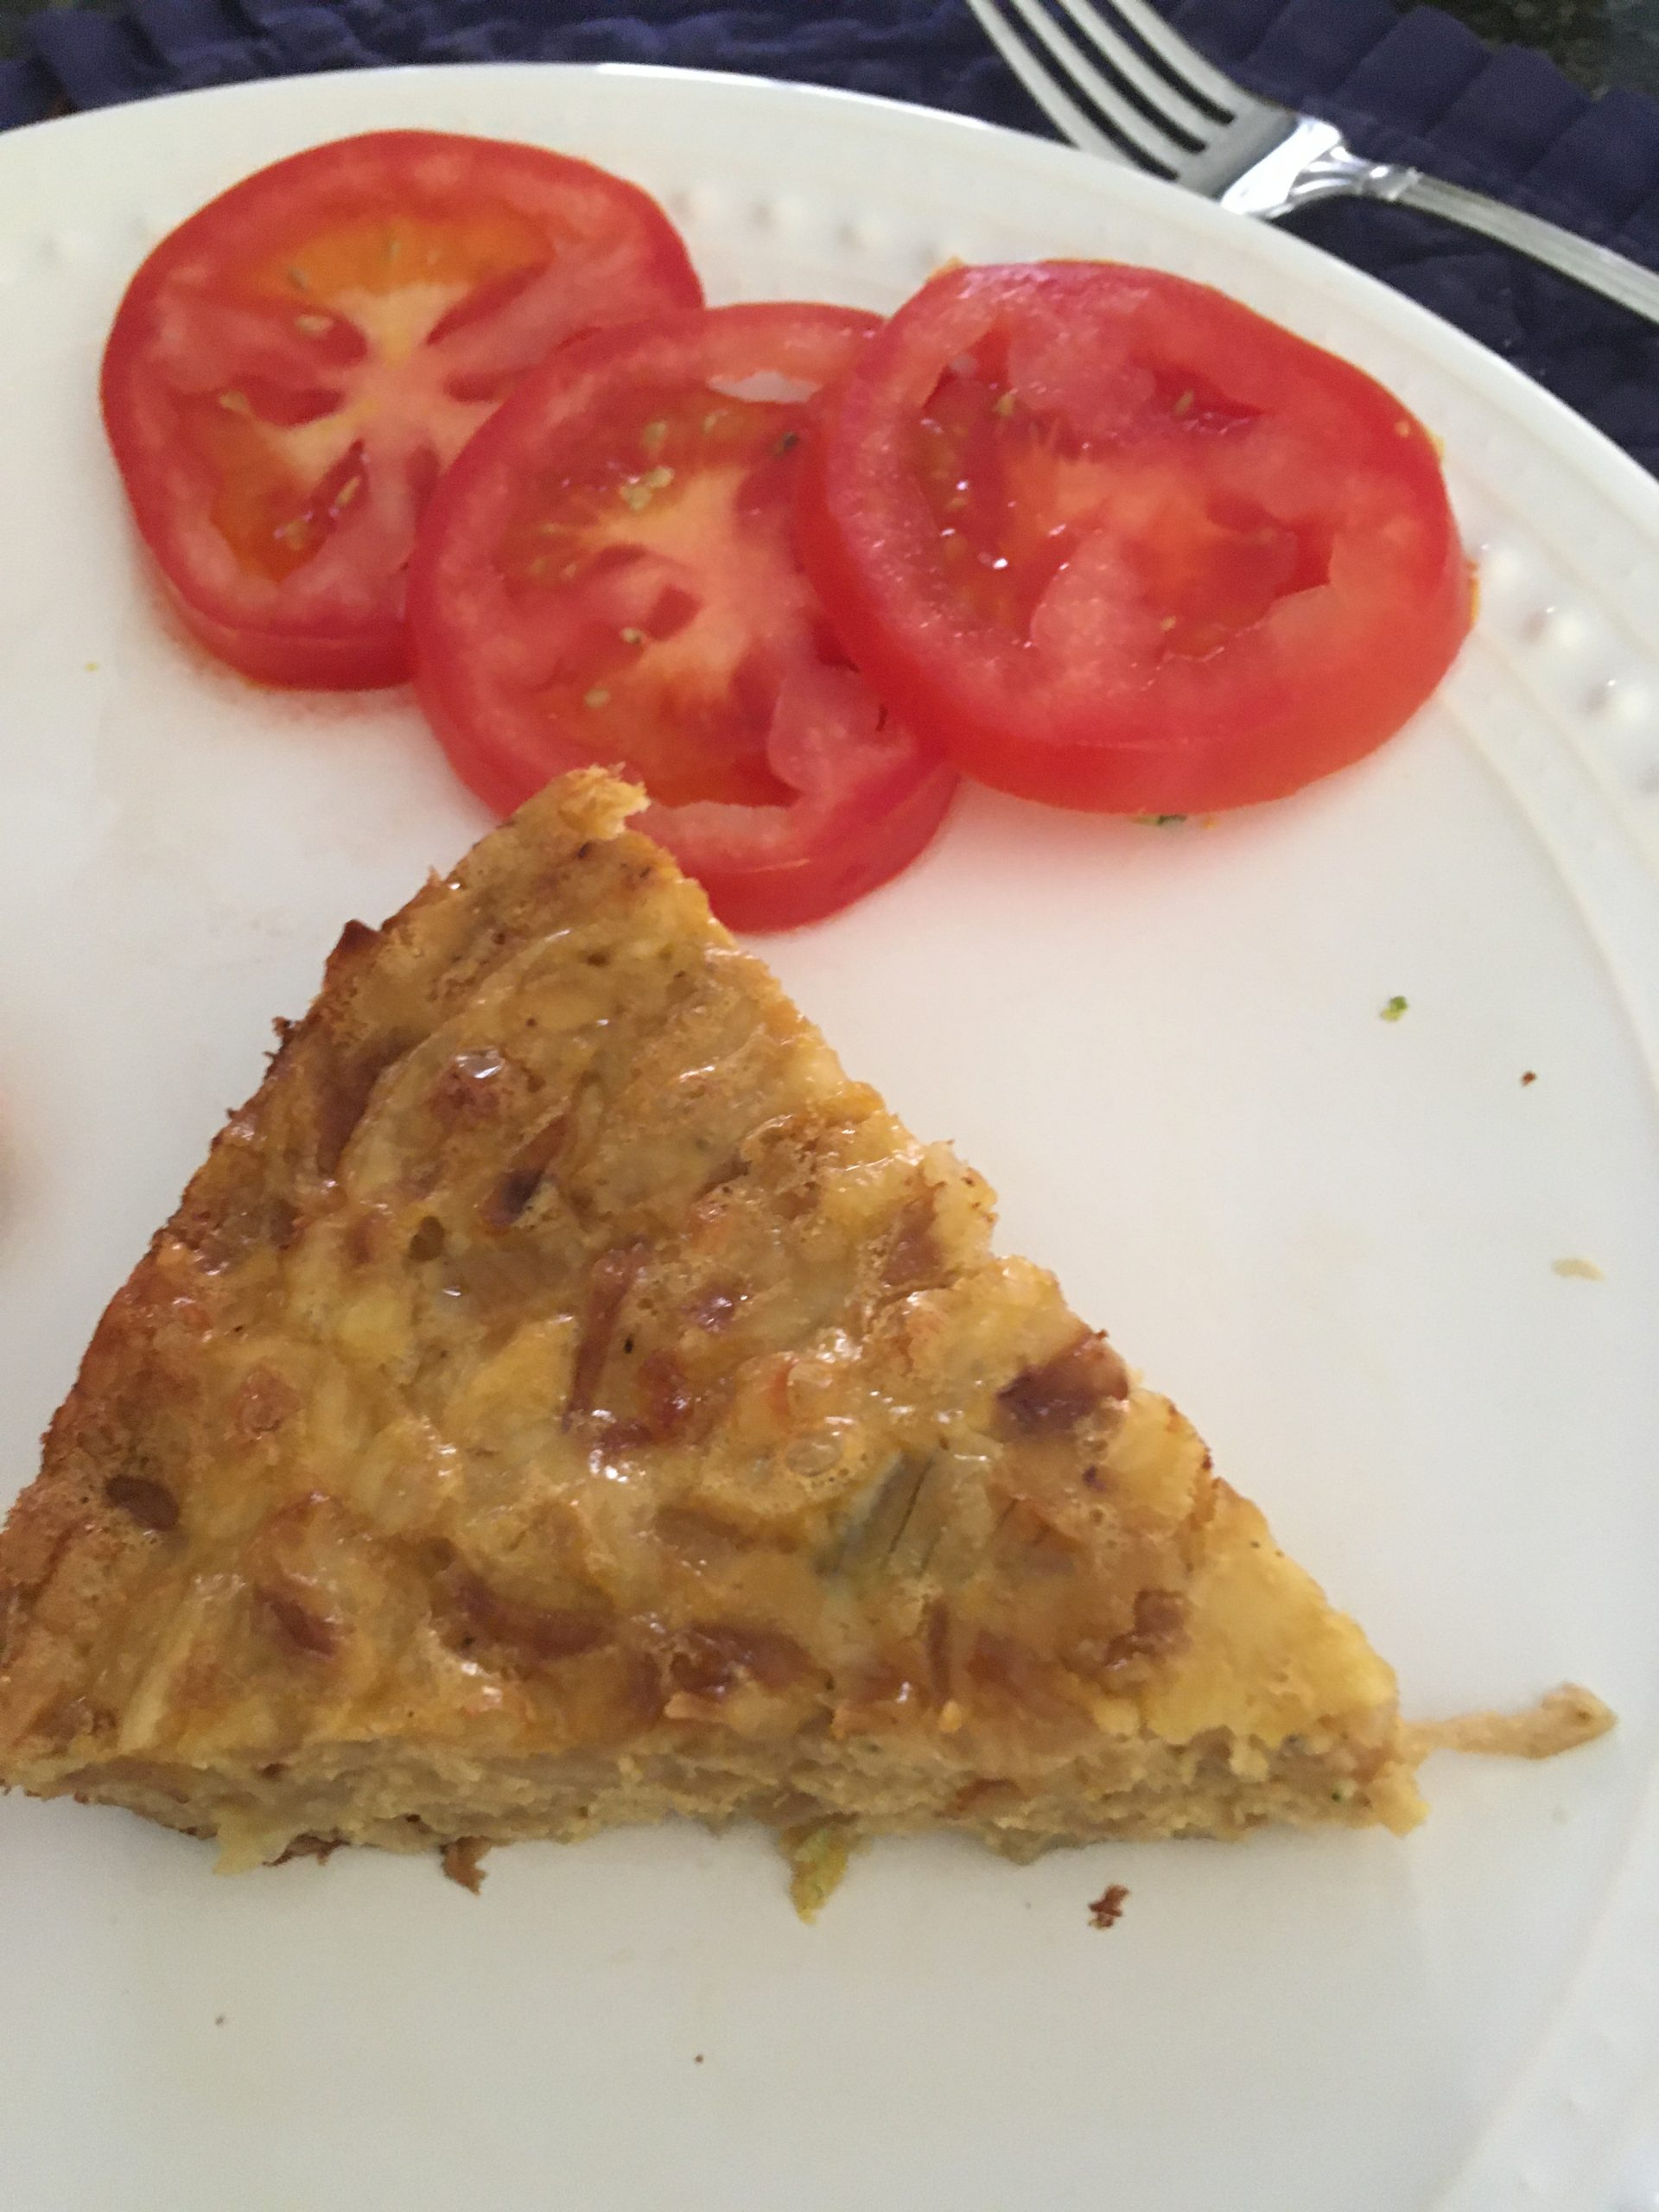 French Onion Tart with tomatoes